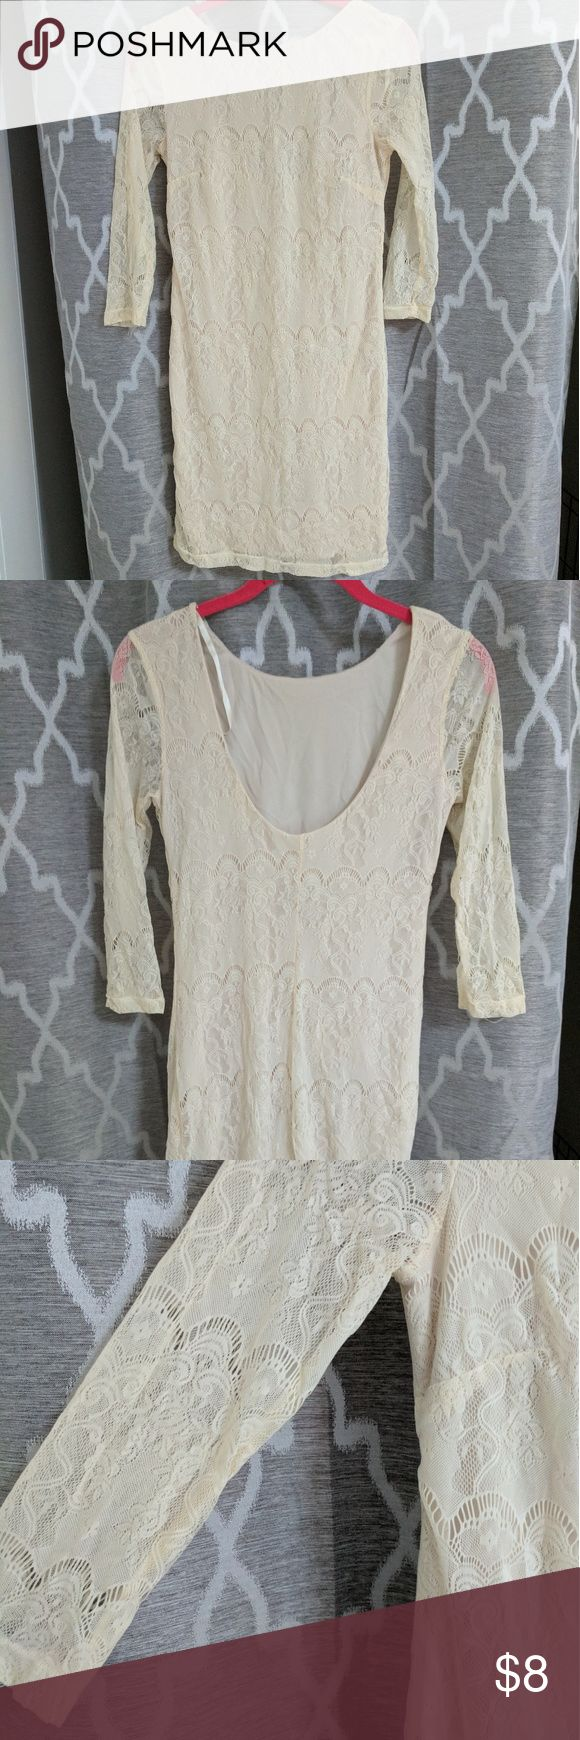 Pins & Needles Cream Lace Dress Size small Cream lace dress. Sleeves are see through but body has a cream liner.  100% nylon and 100% polyester Pins & Needles Dresses Mini